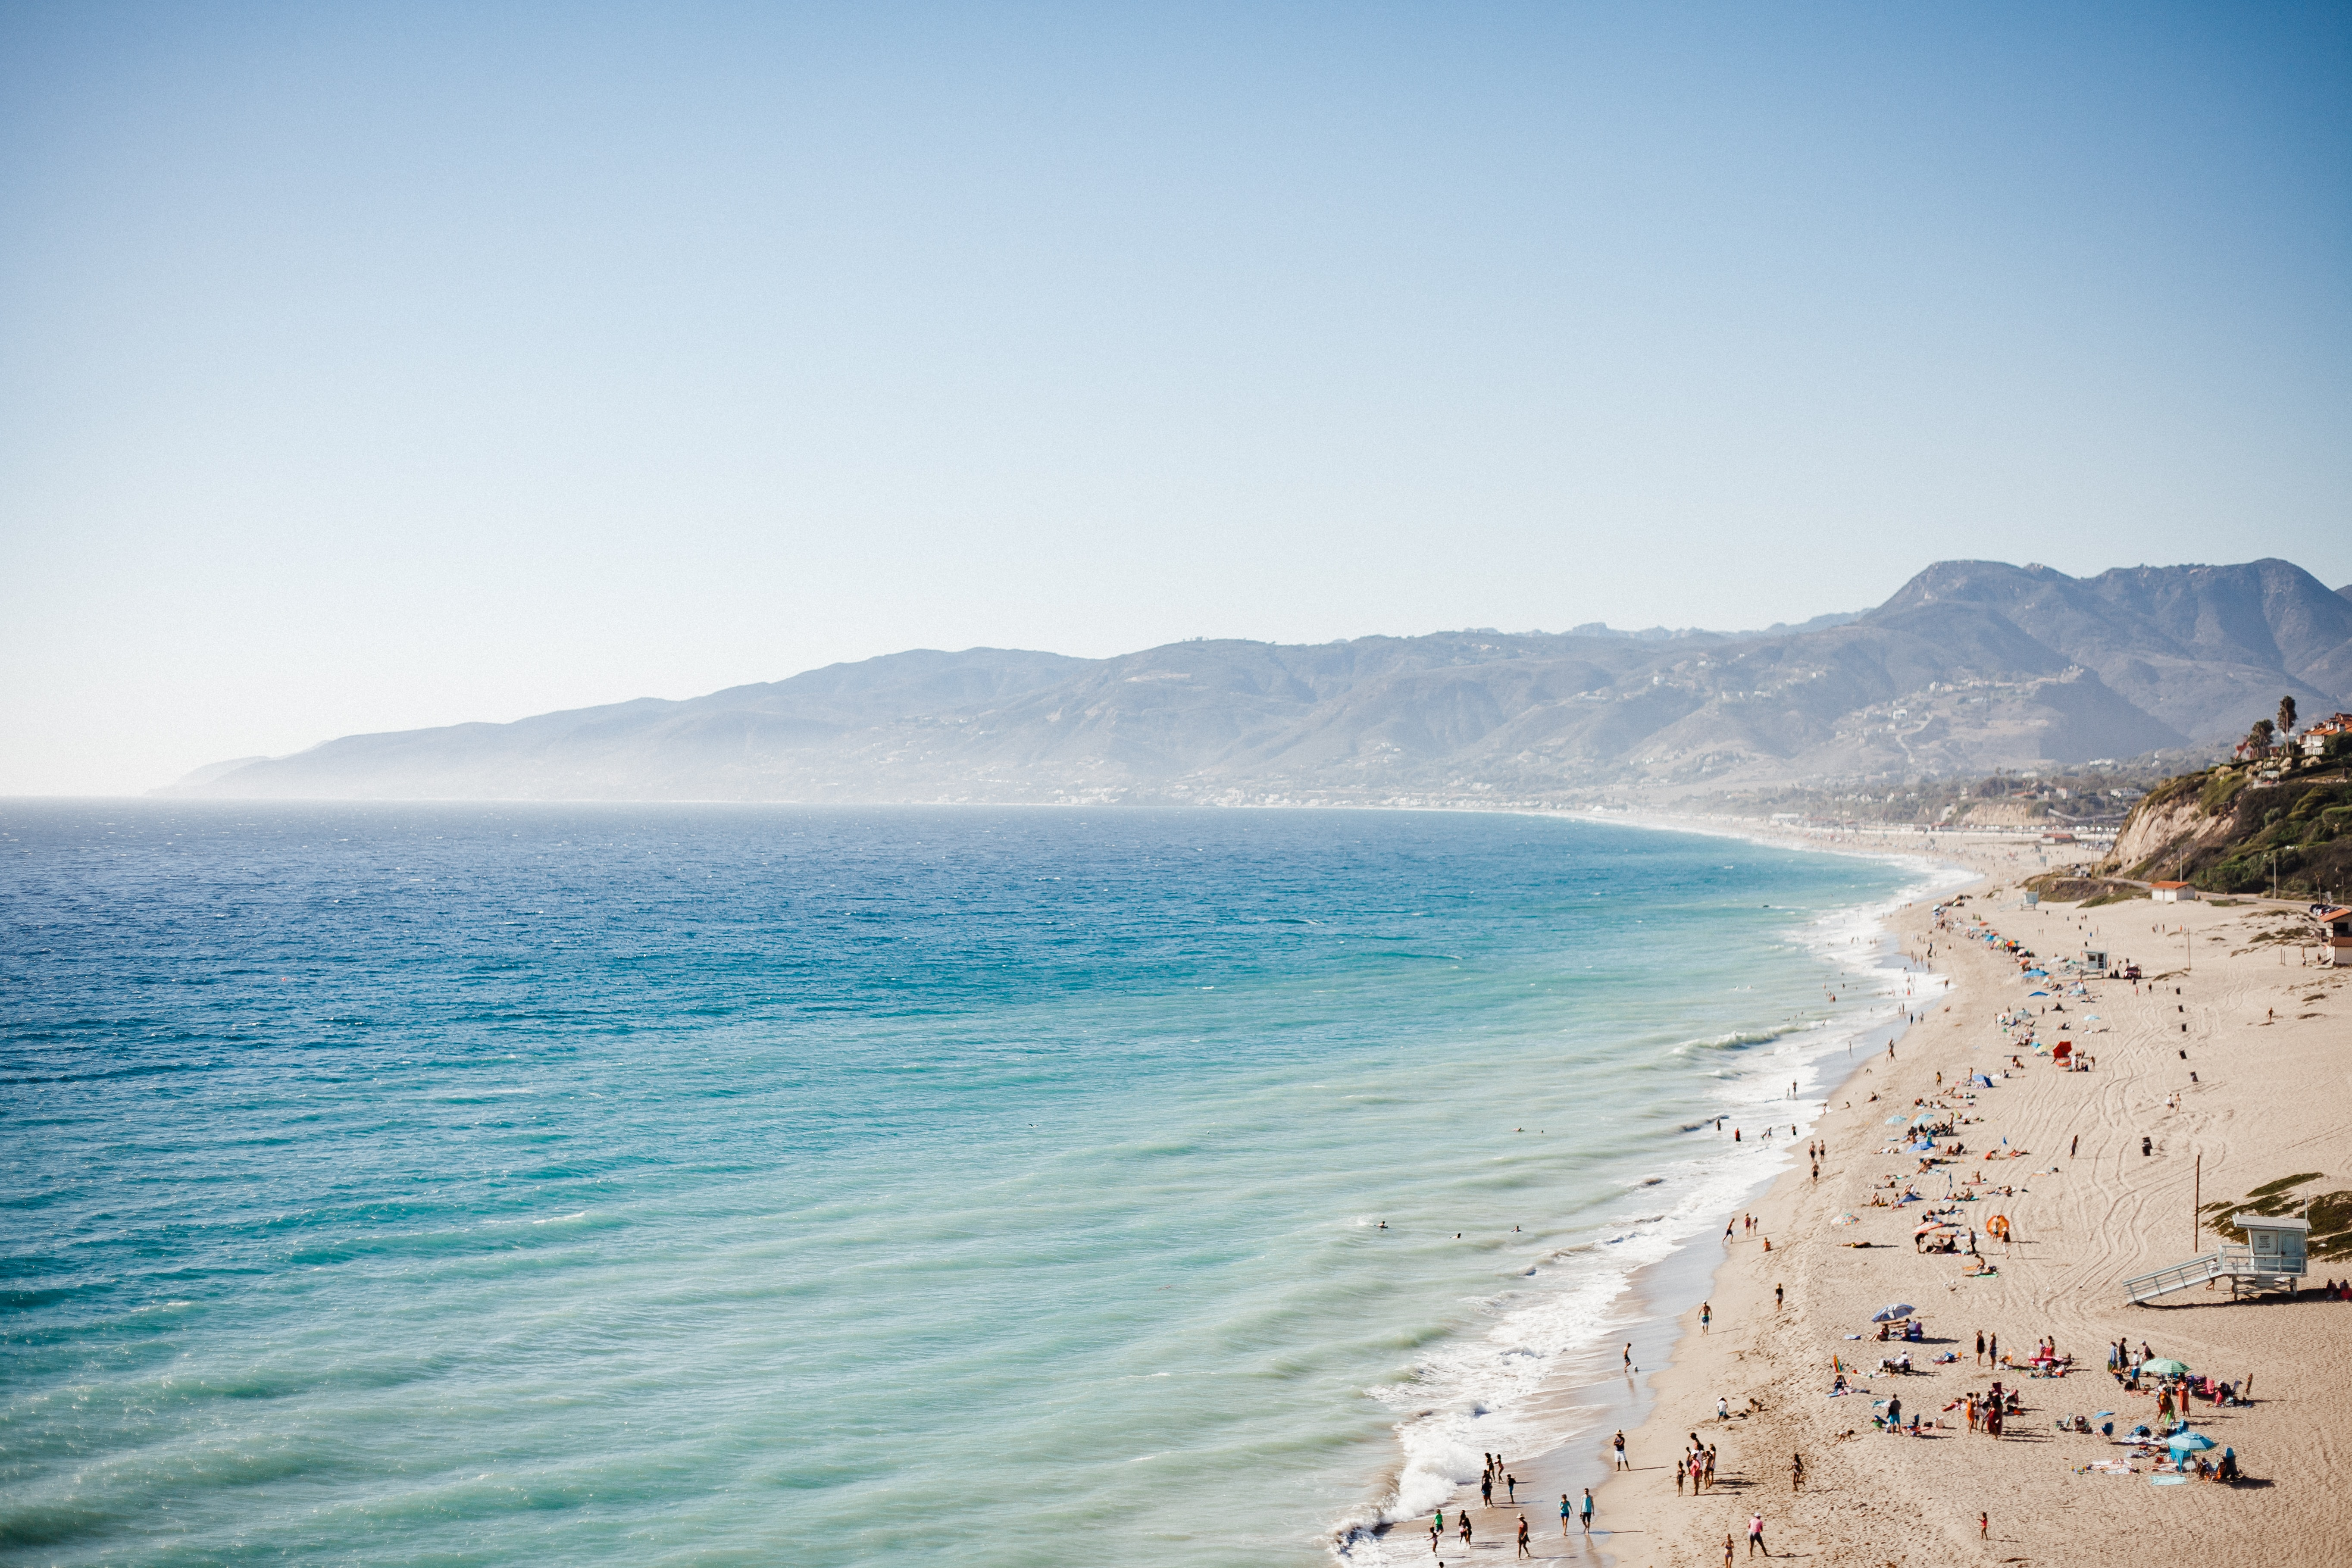 Clean ocean washing up on sand shore filled with people in Malibu